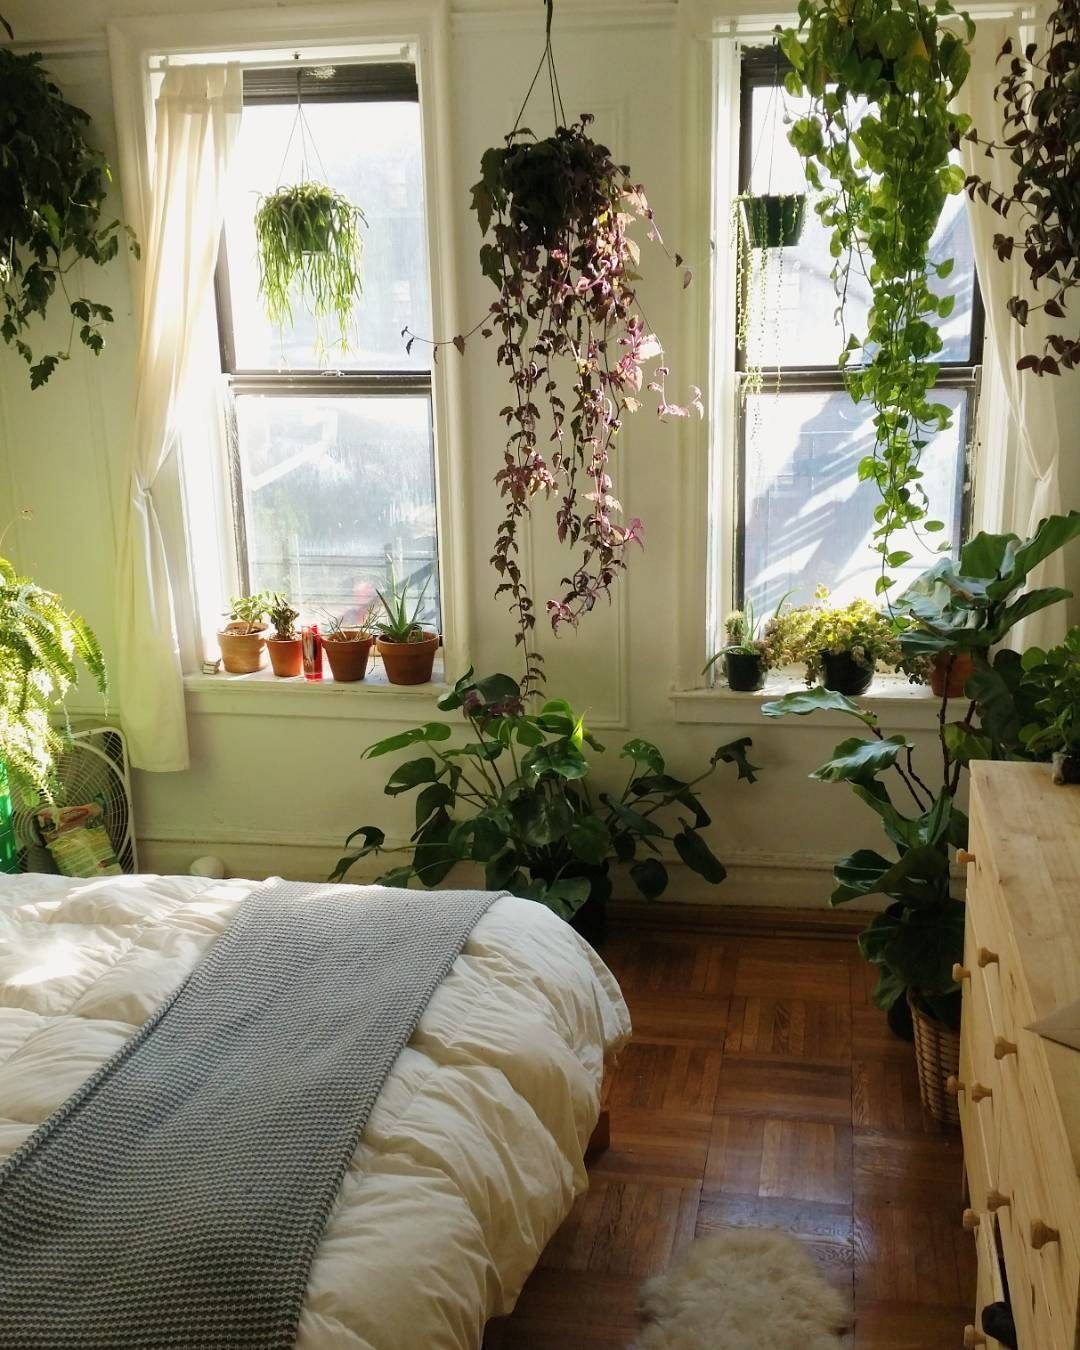 Cool Plants For Your Room Urban Jungle Bloggers On Instagram We Could Stay Here